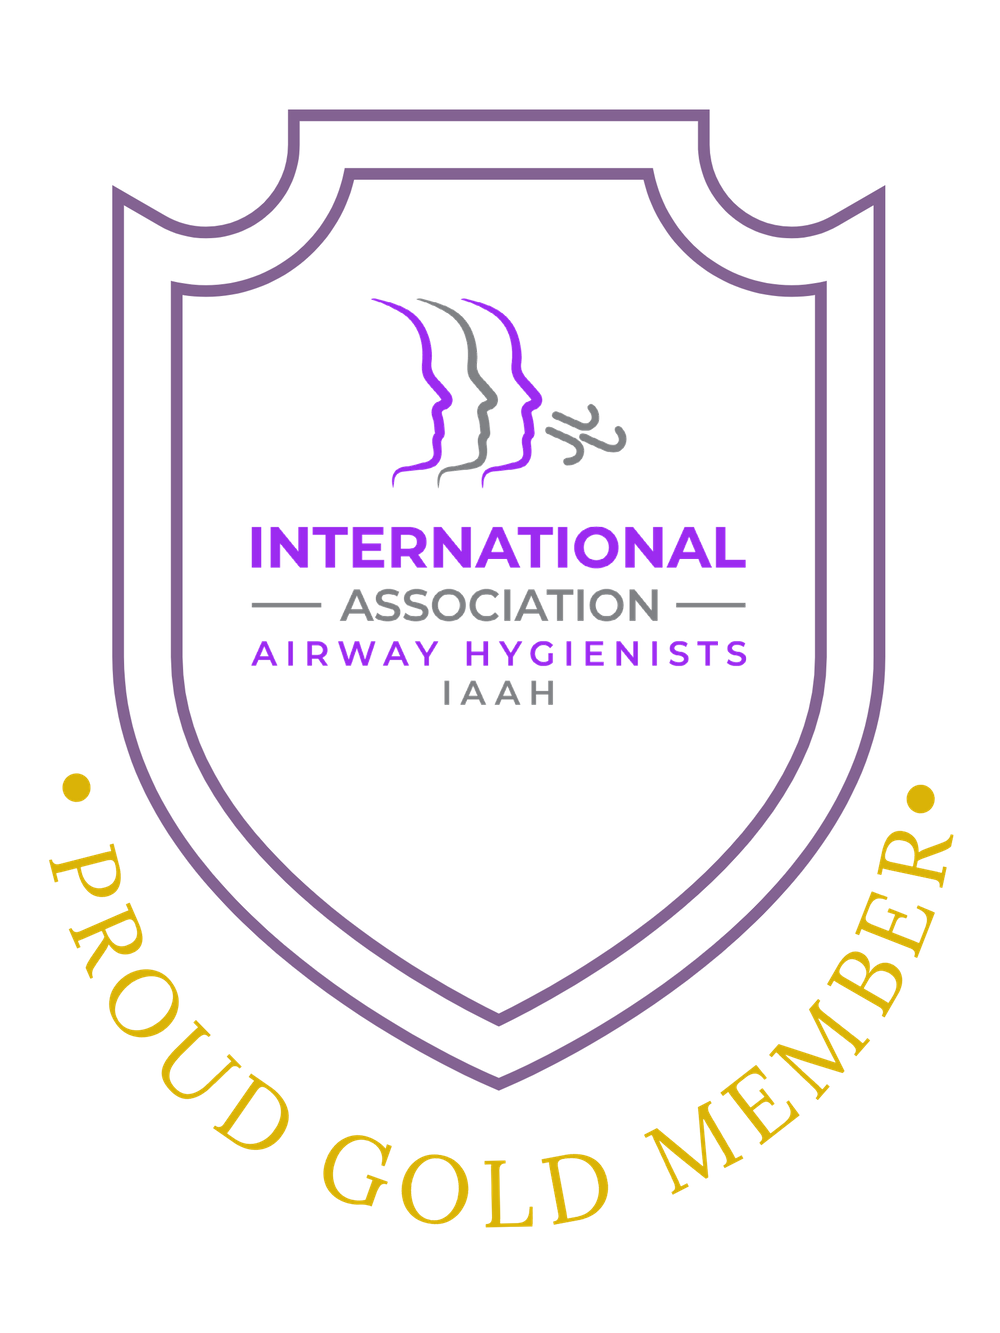 Gold Member of the International Association of Airway Hygienists